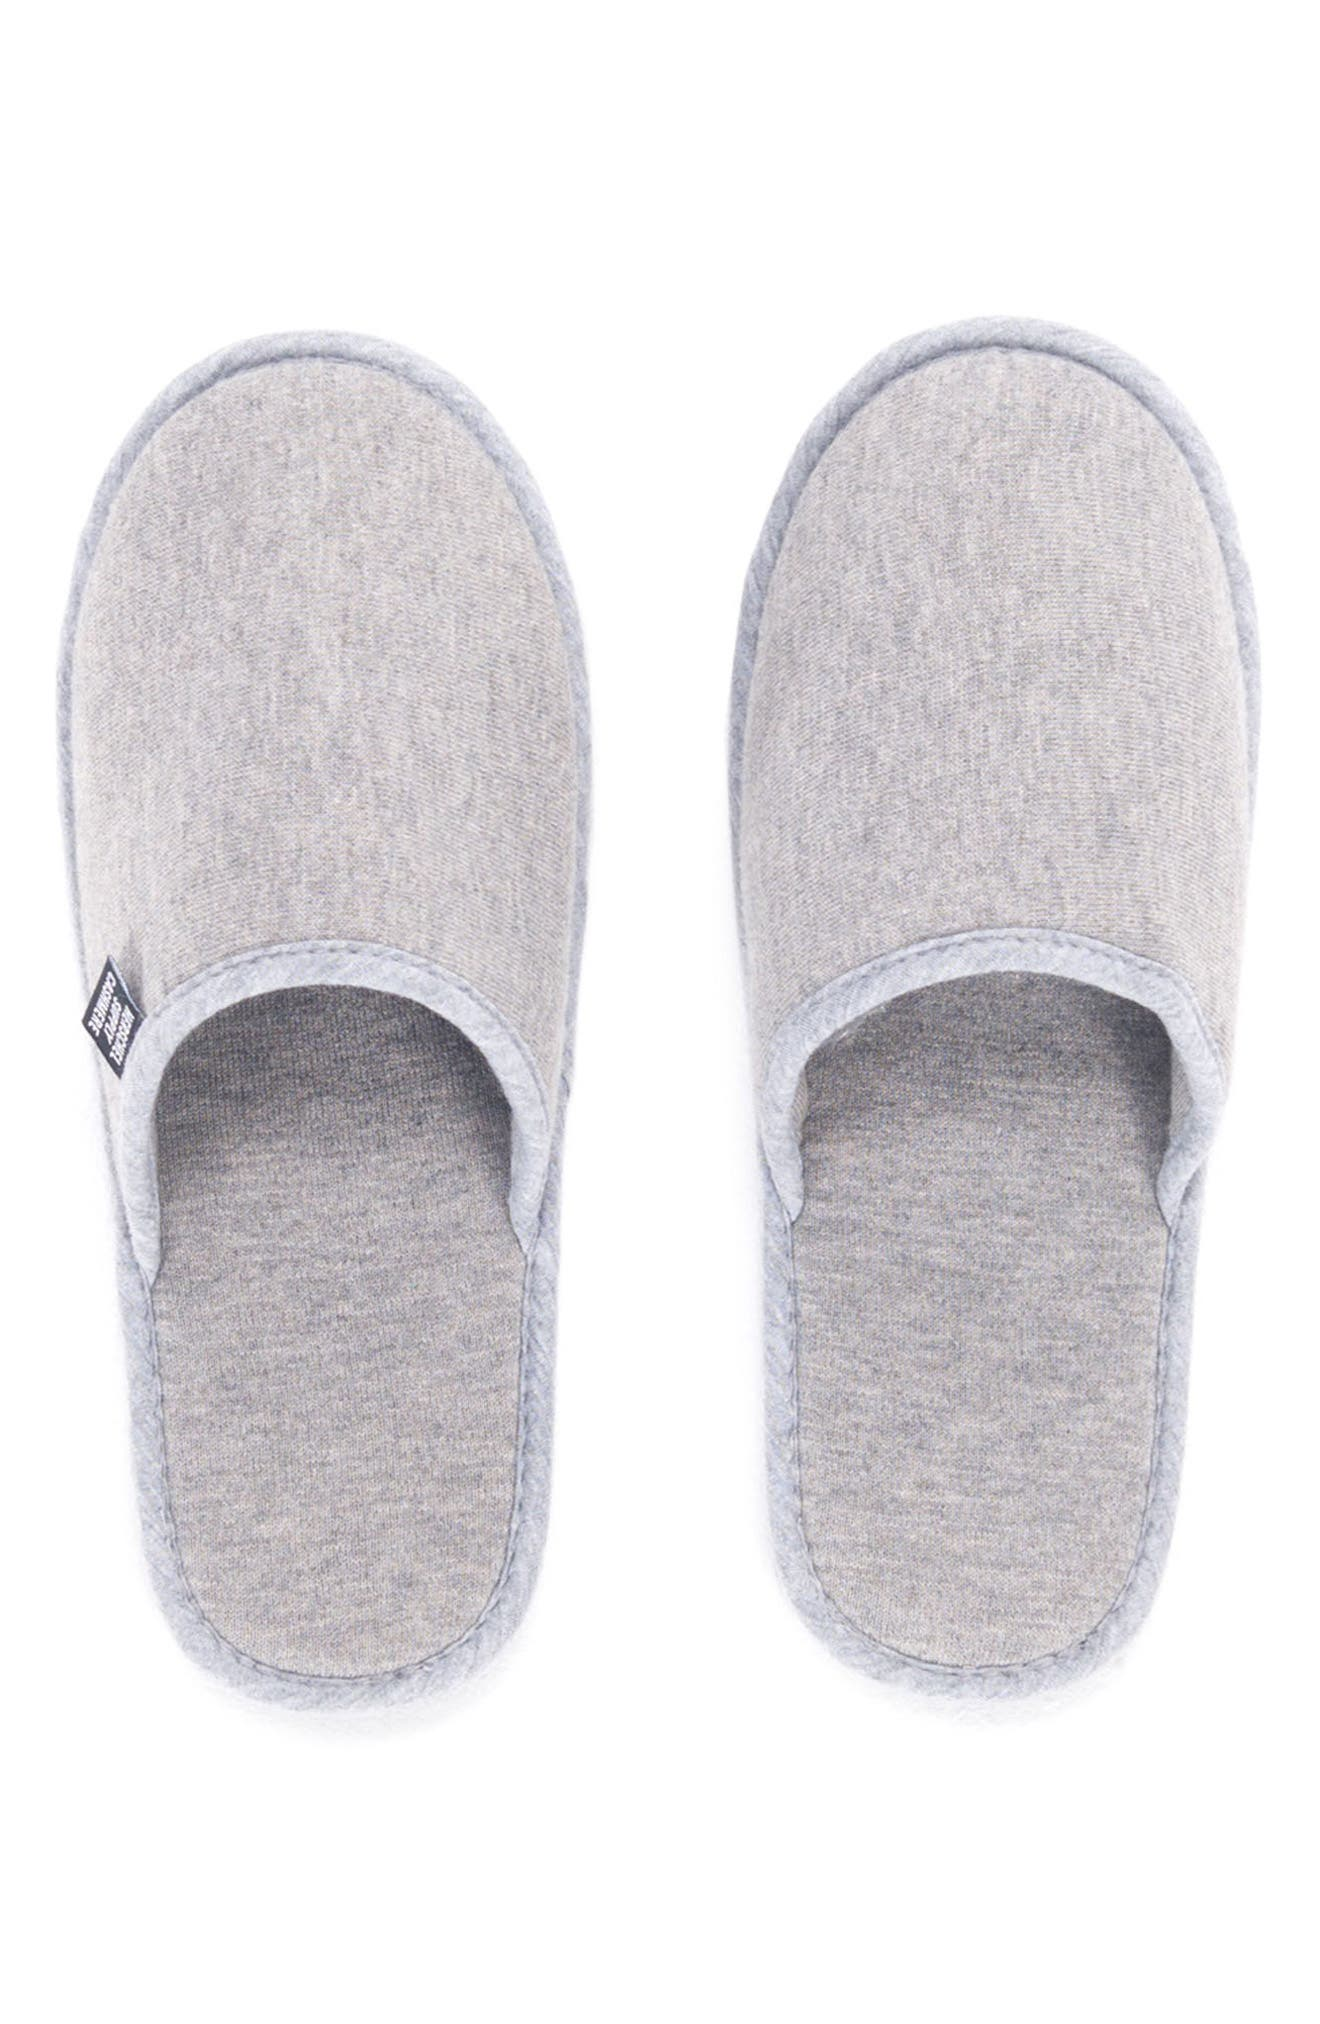 Cashmere Slippers,                             Alternate thumbnail 2, color,                             HEATHERED GREY